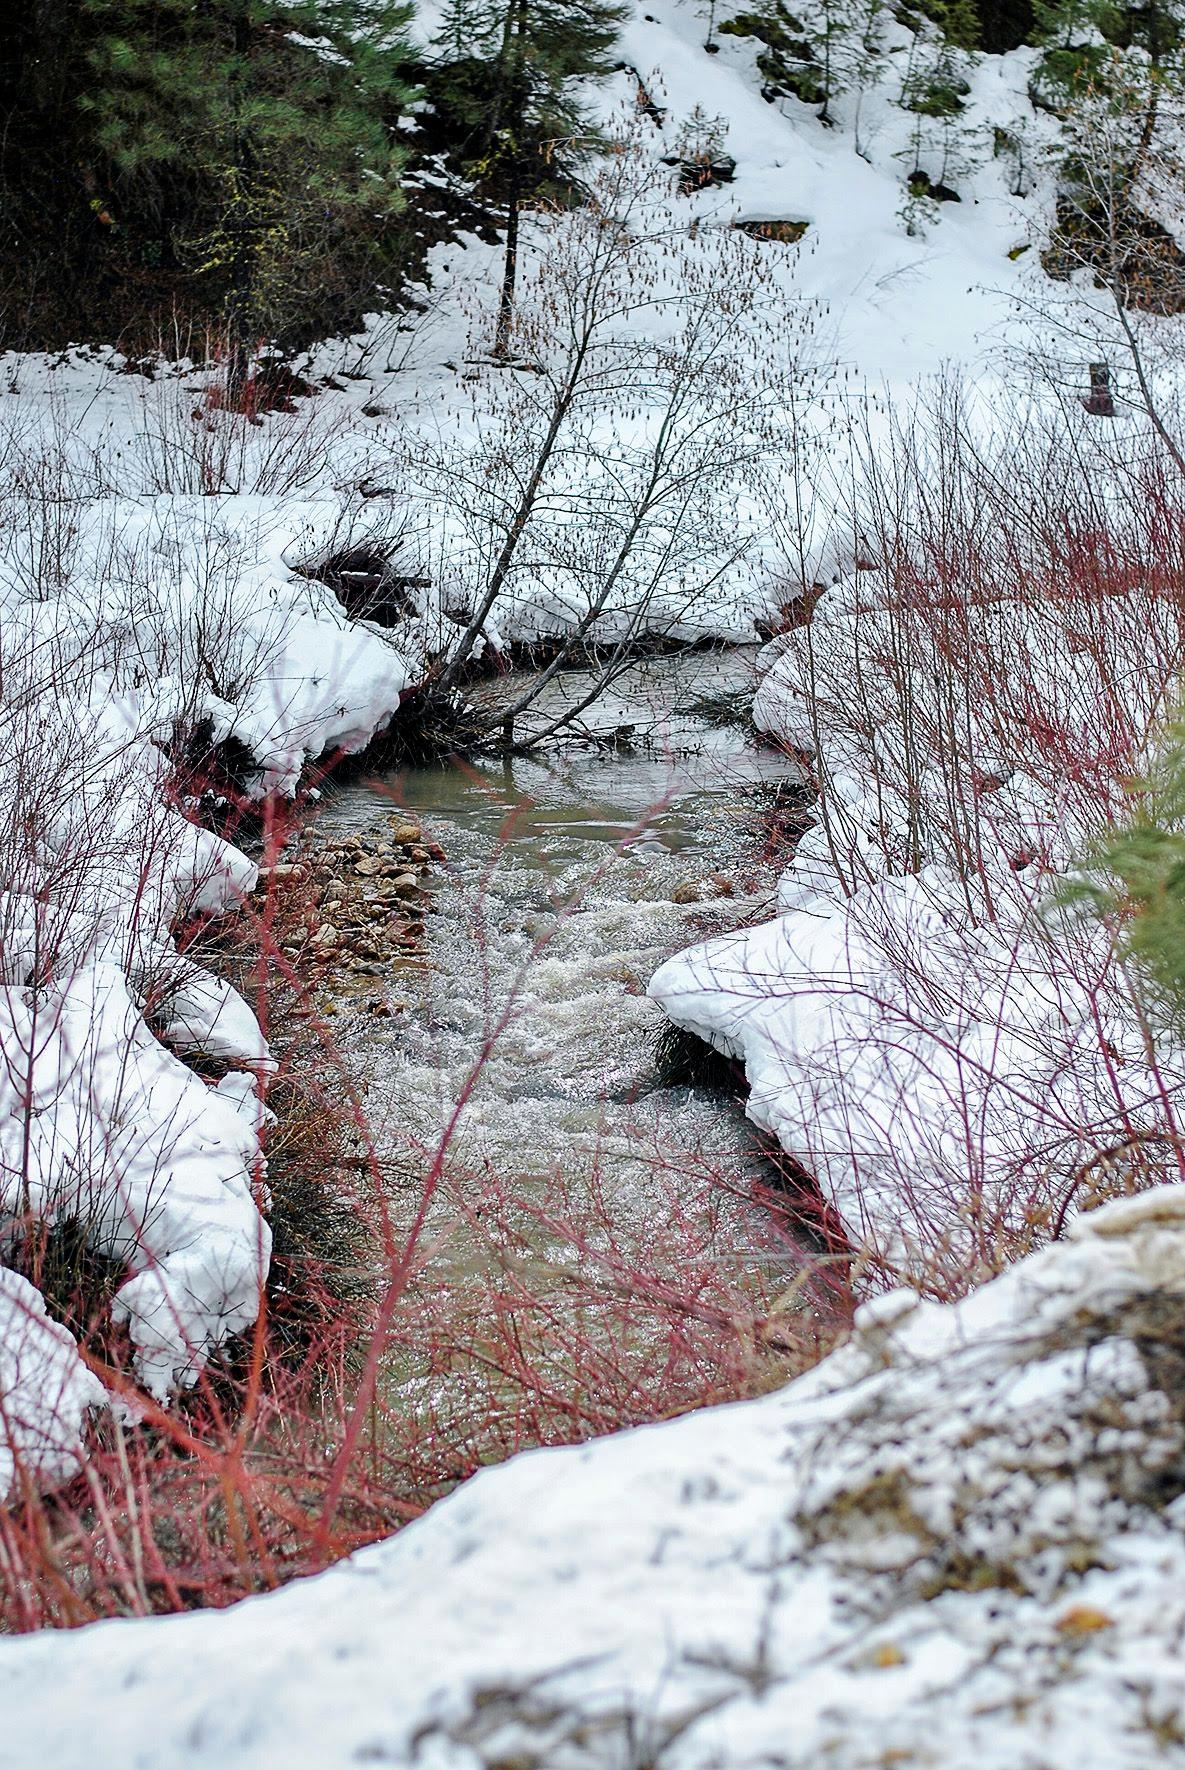 "Camilla Stuck, Grade 10 Honorable Mention, Mountain View High School: ""This picture was taken just a few feet away from Highway 21 on a road called Grimes Creek. I spent most of my time as a kid in this area, where I like to sit on rocks and listen to the gurgling of the water. This picture shows how detailed the water looks and how the water leads the eye into the forest and beyond."""